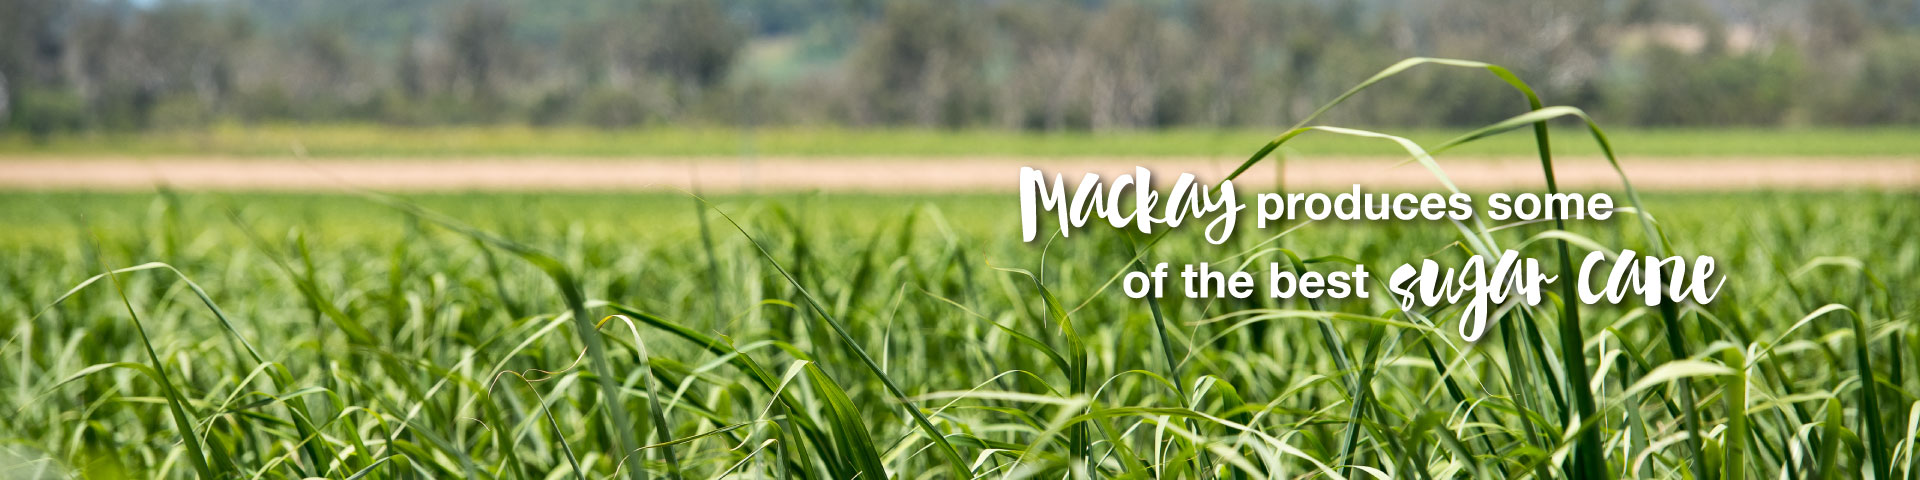 Mackay produces some of the best sugar cane